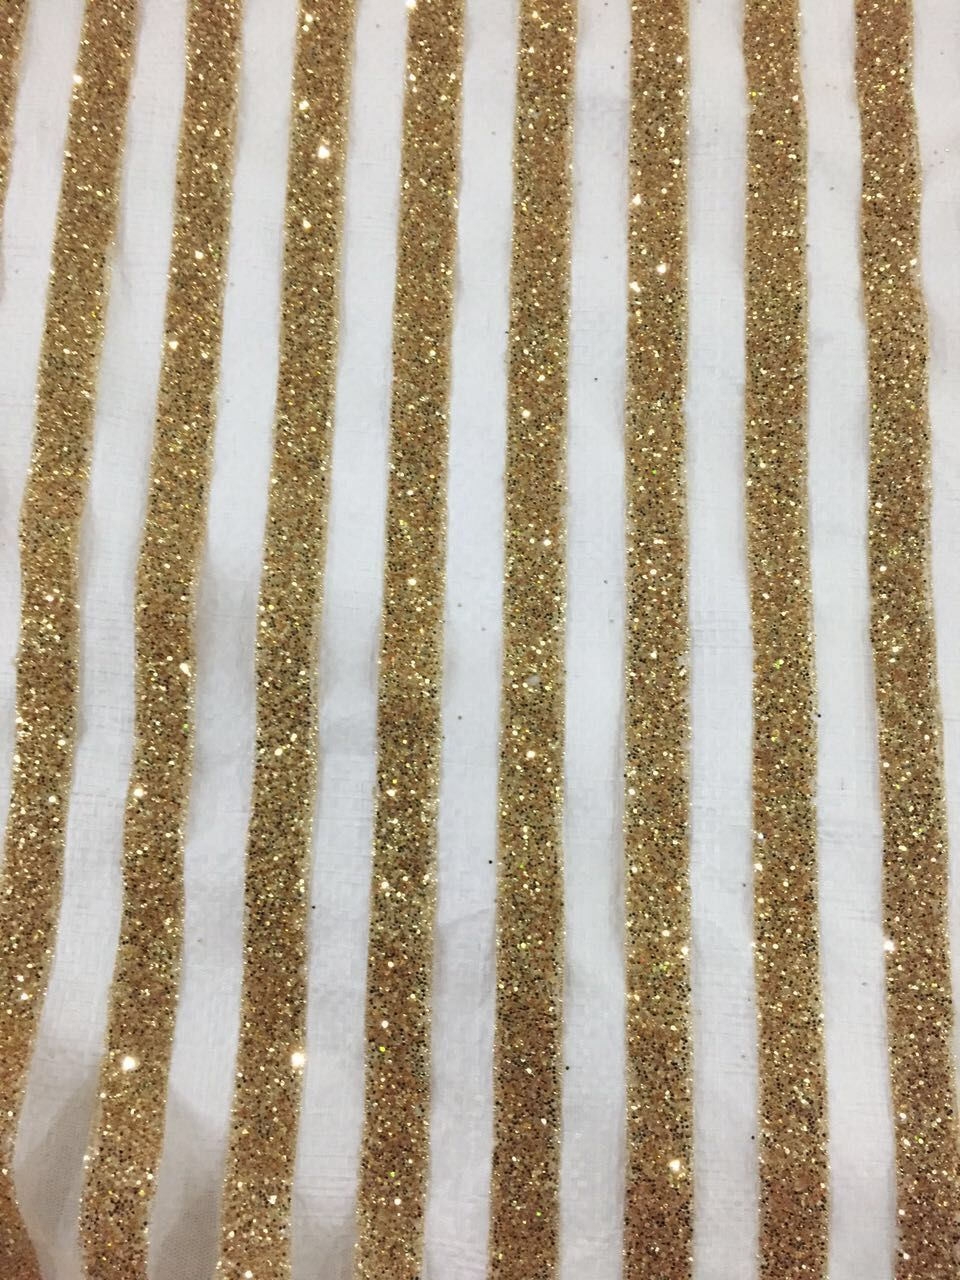 5 Yards lot high quality CGL32401 african lace fabric with glitter for wedding aso ebi style